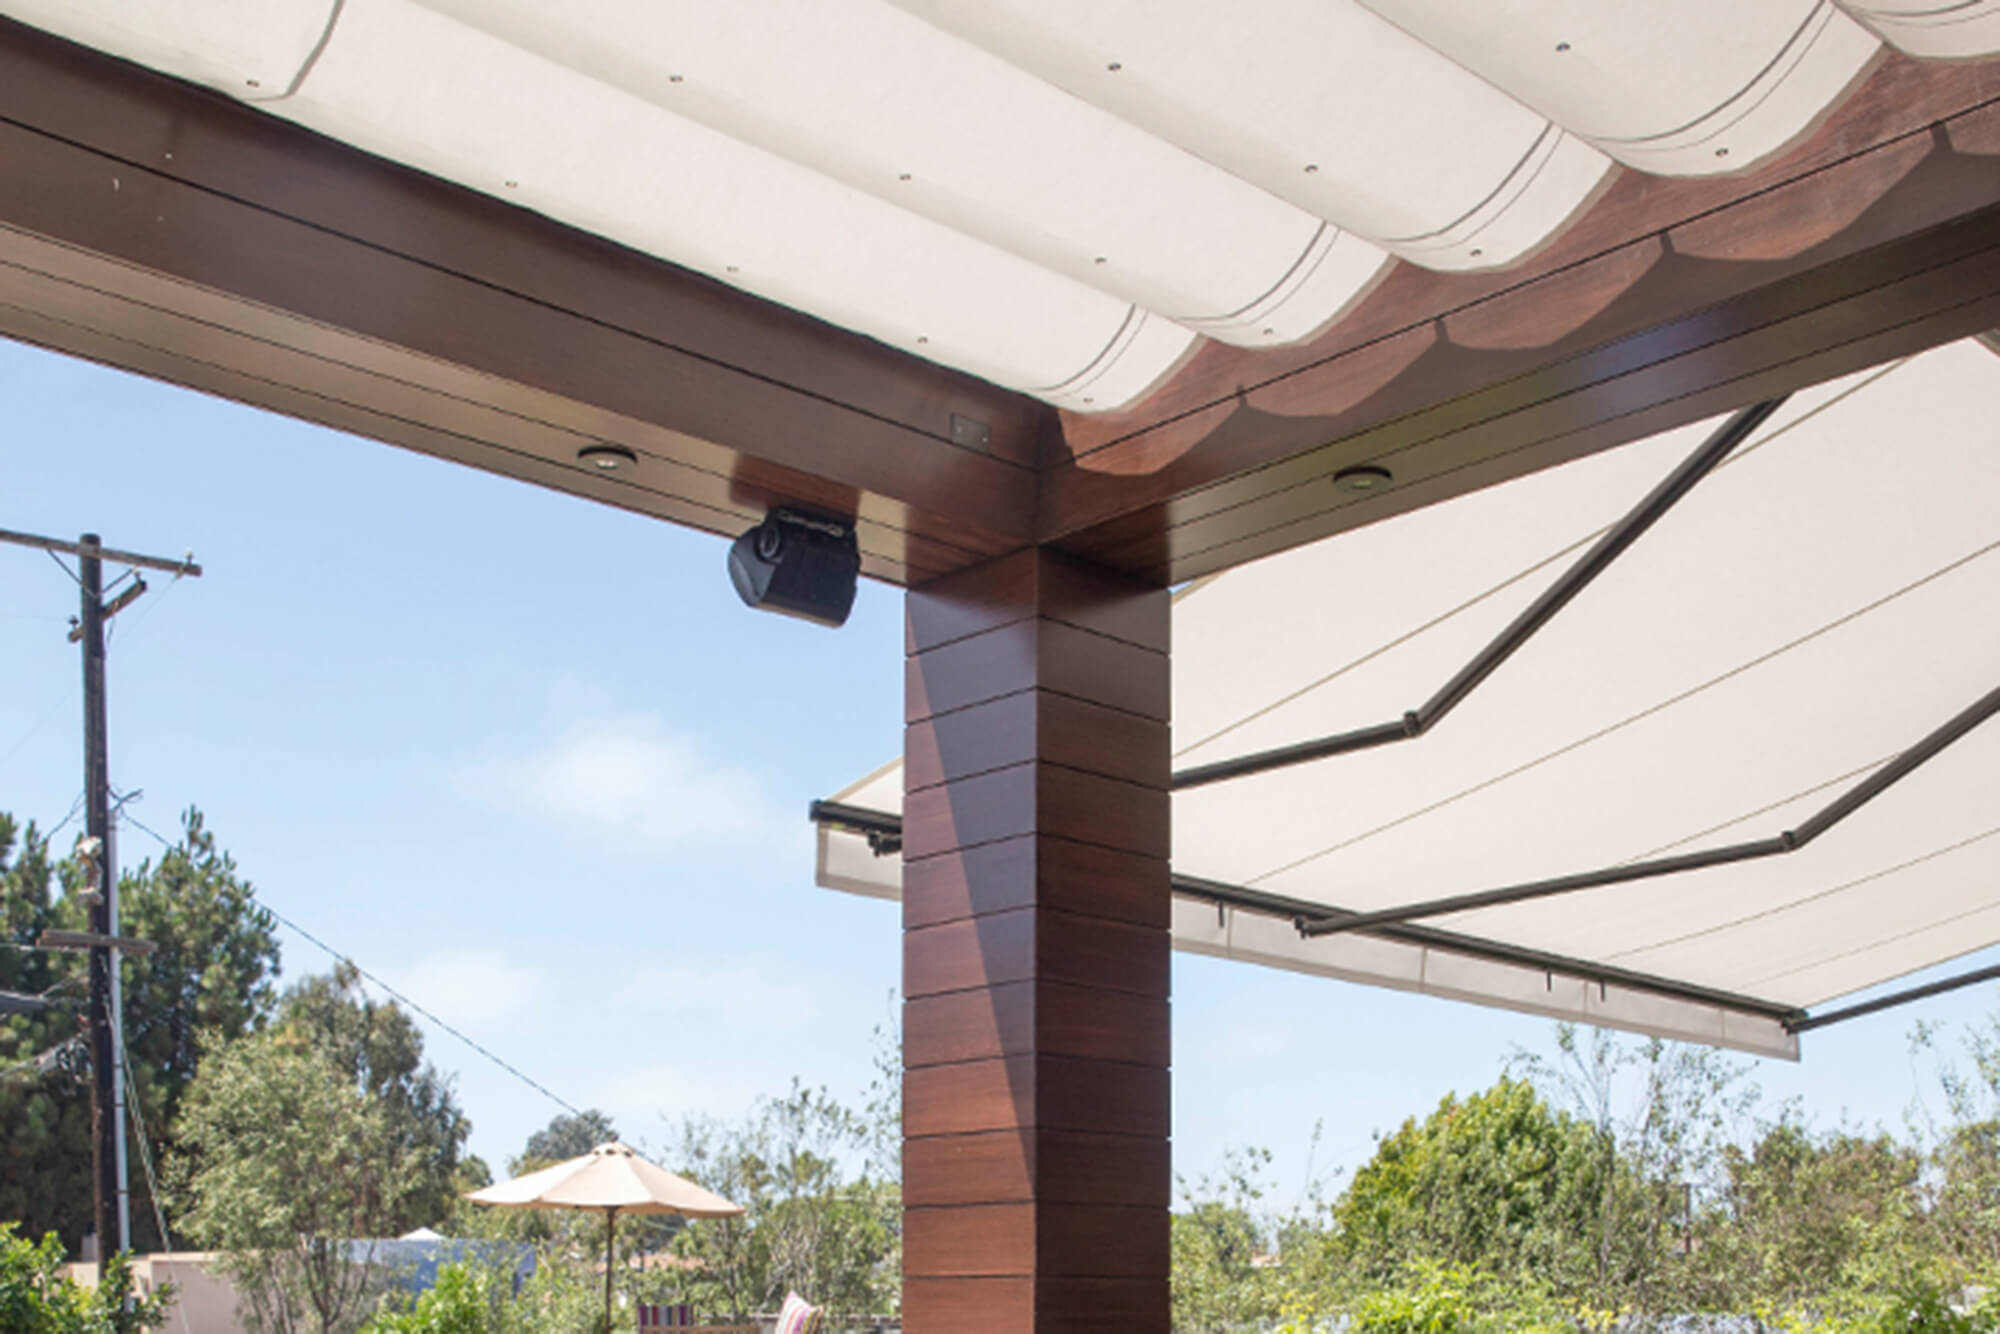 Fabric A Patio Is Shaded By Retractable Awning And Pergoal Both Made Using Silver Sunbrella Shade